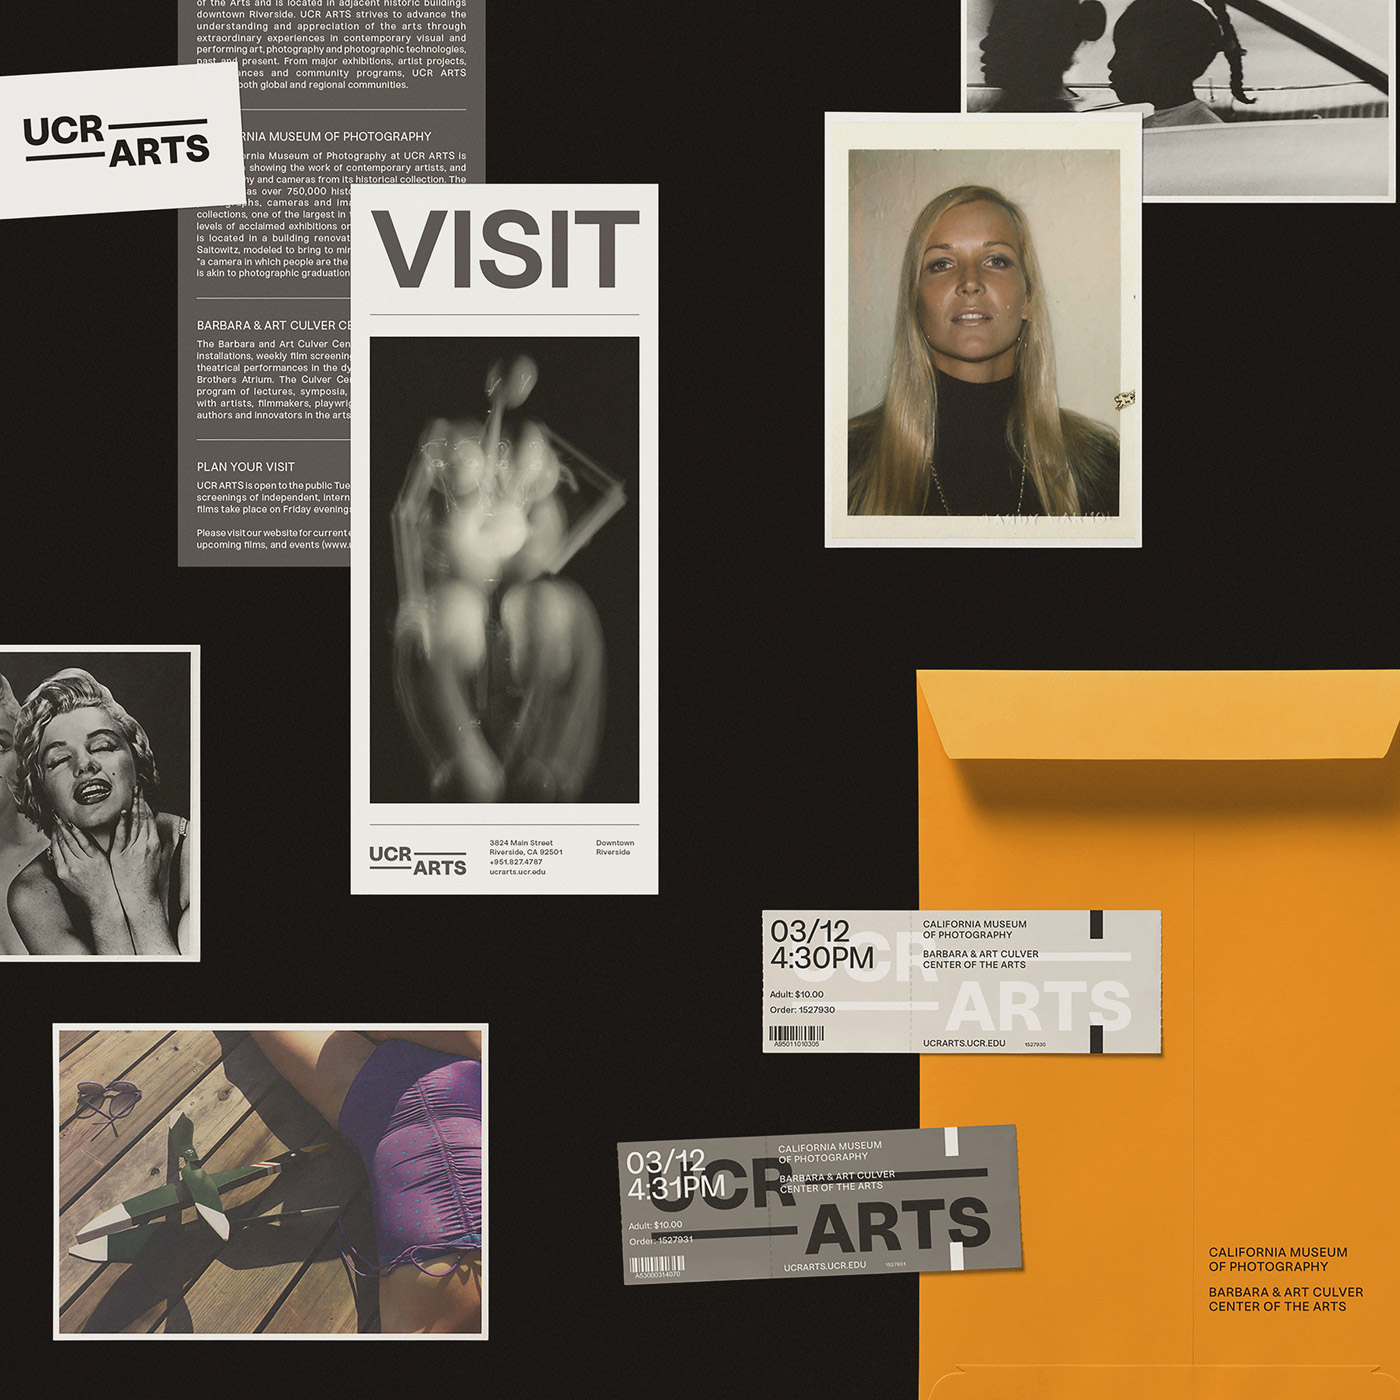 Rebranding by Forth + Back of the visual identity for the art museum and cultural center, UCR ARTS.